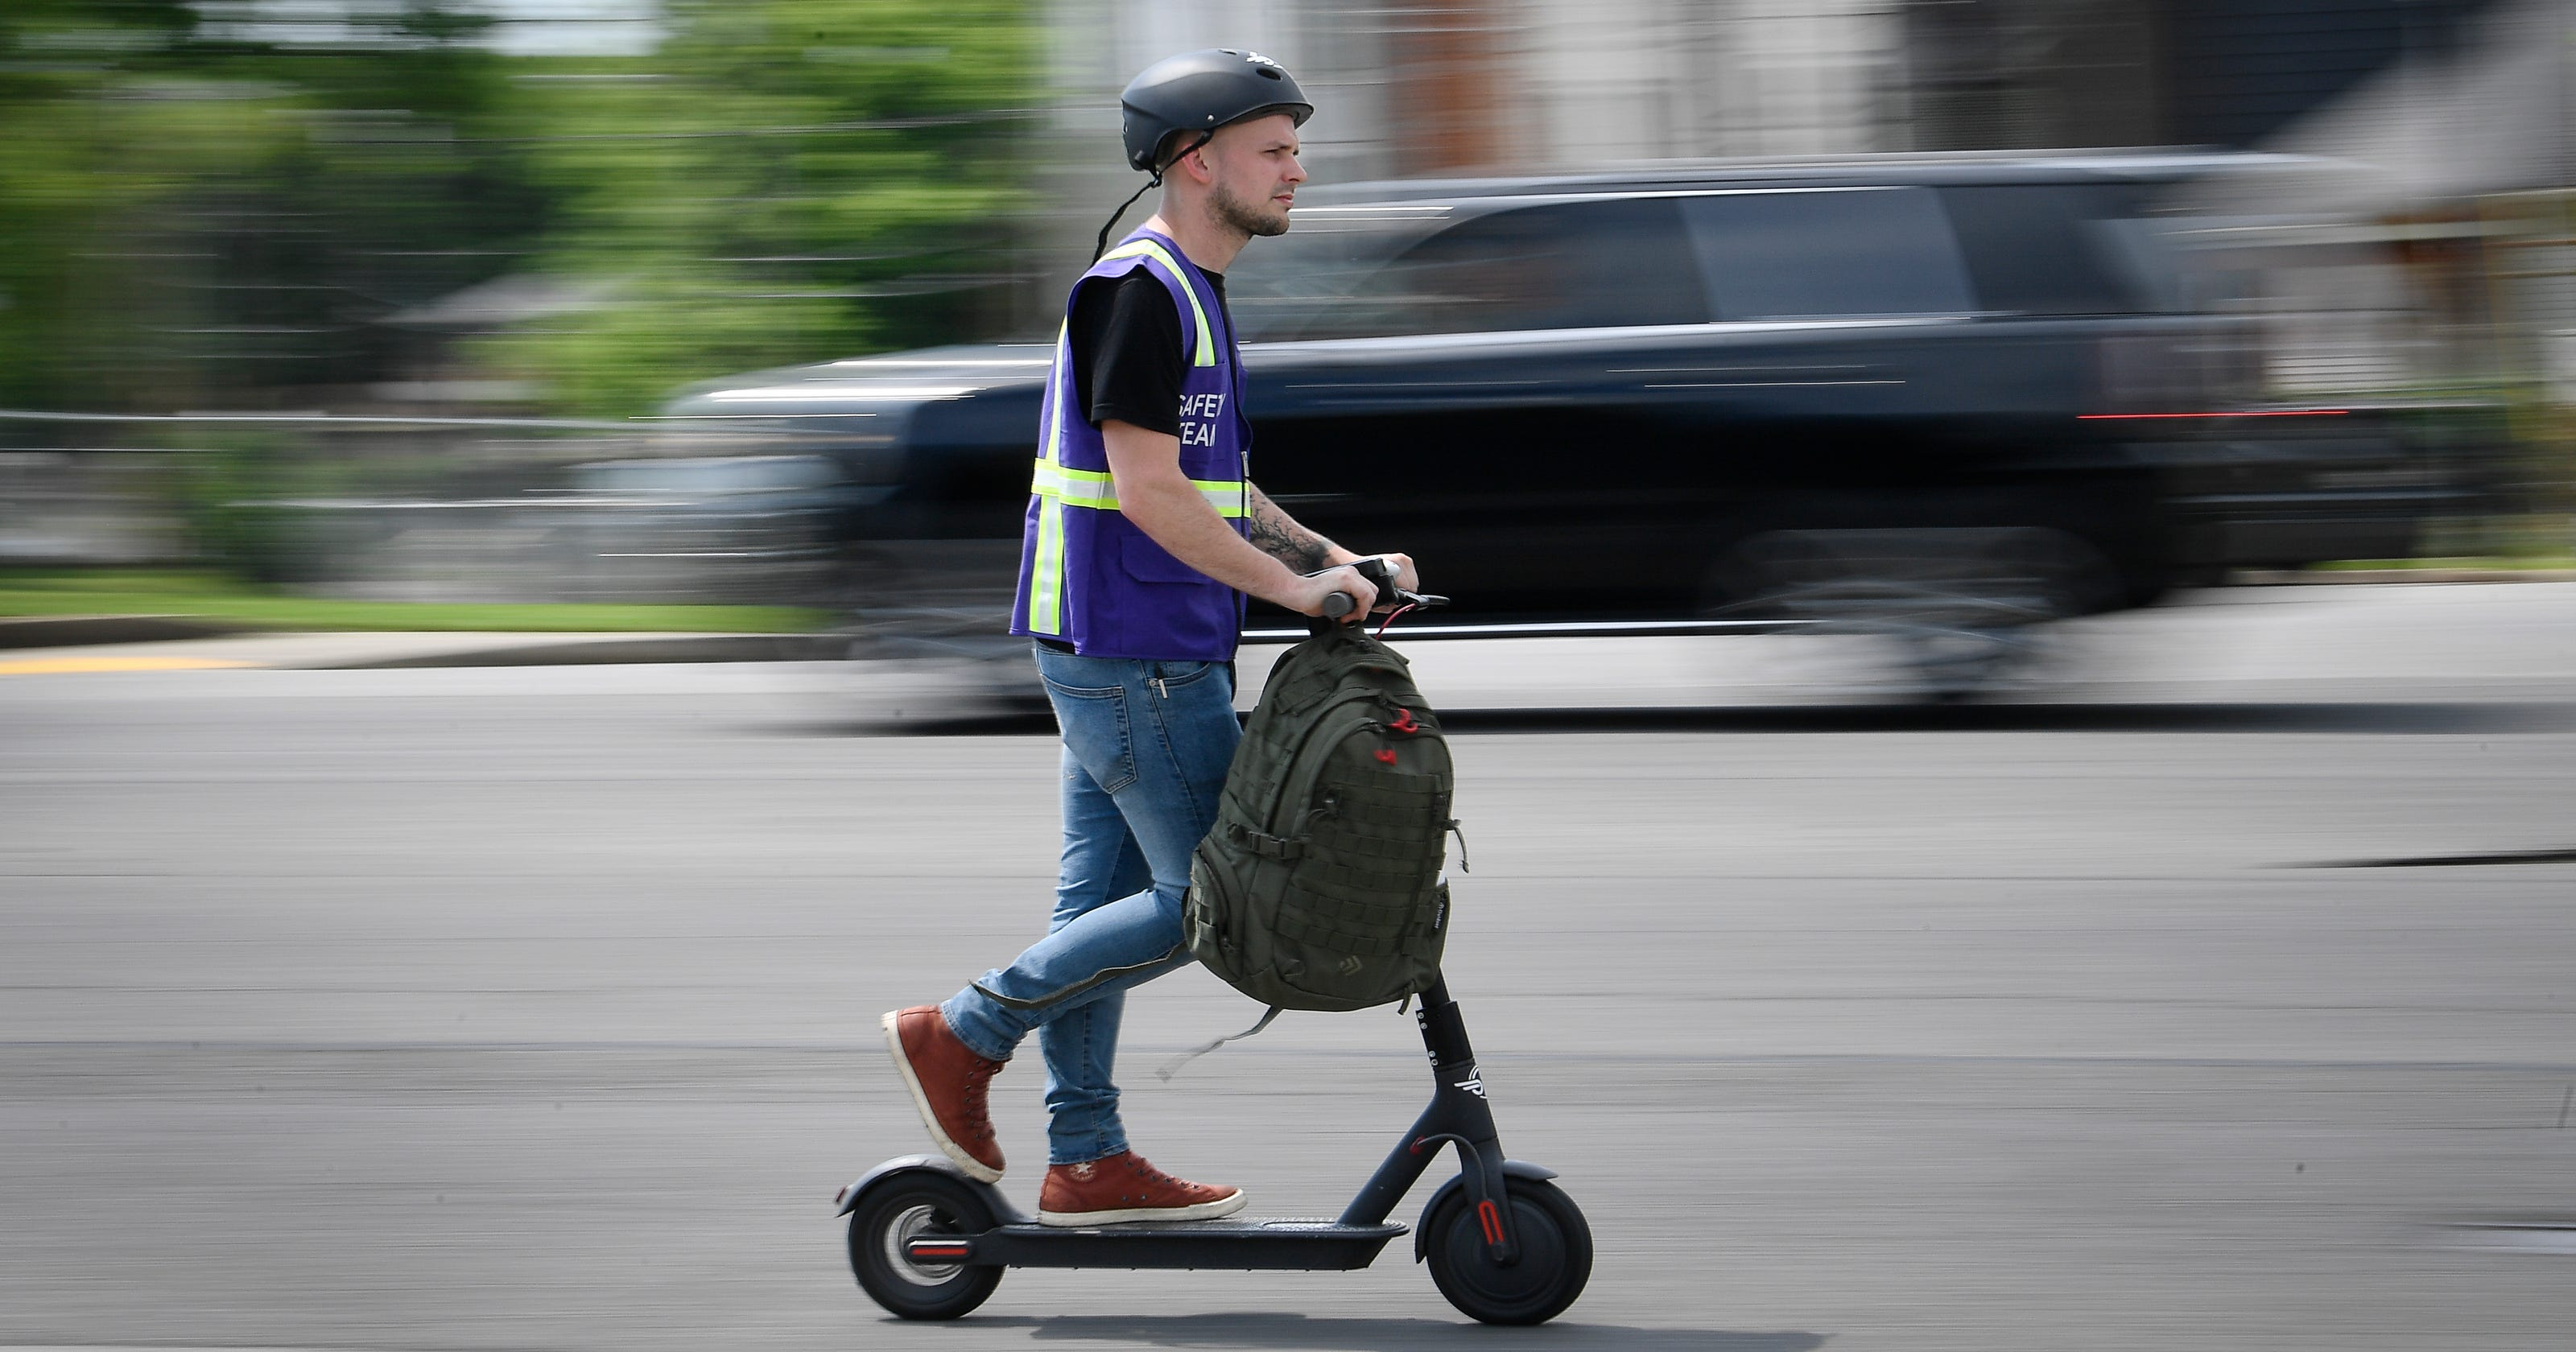 Bird scooter: Electric scooter company will pay you to